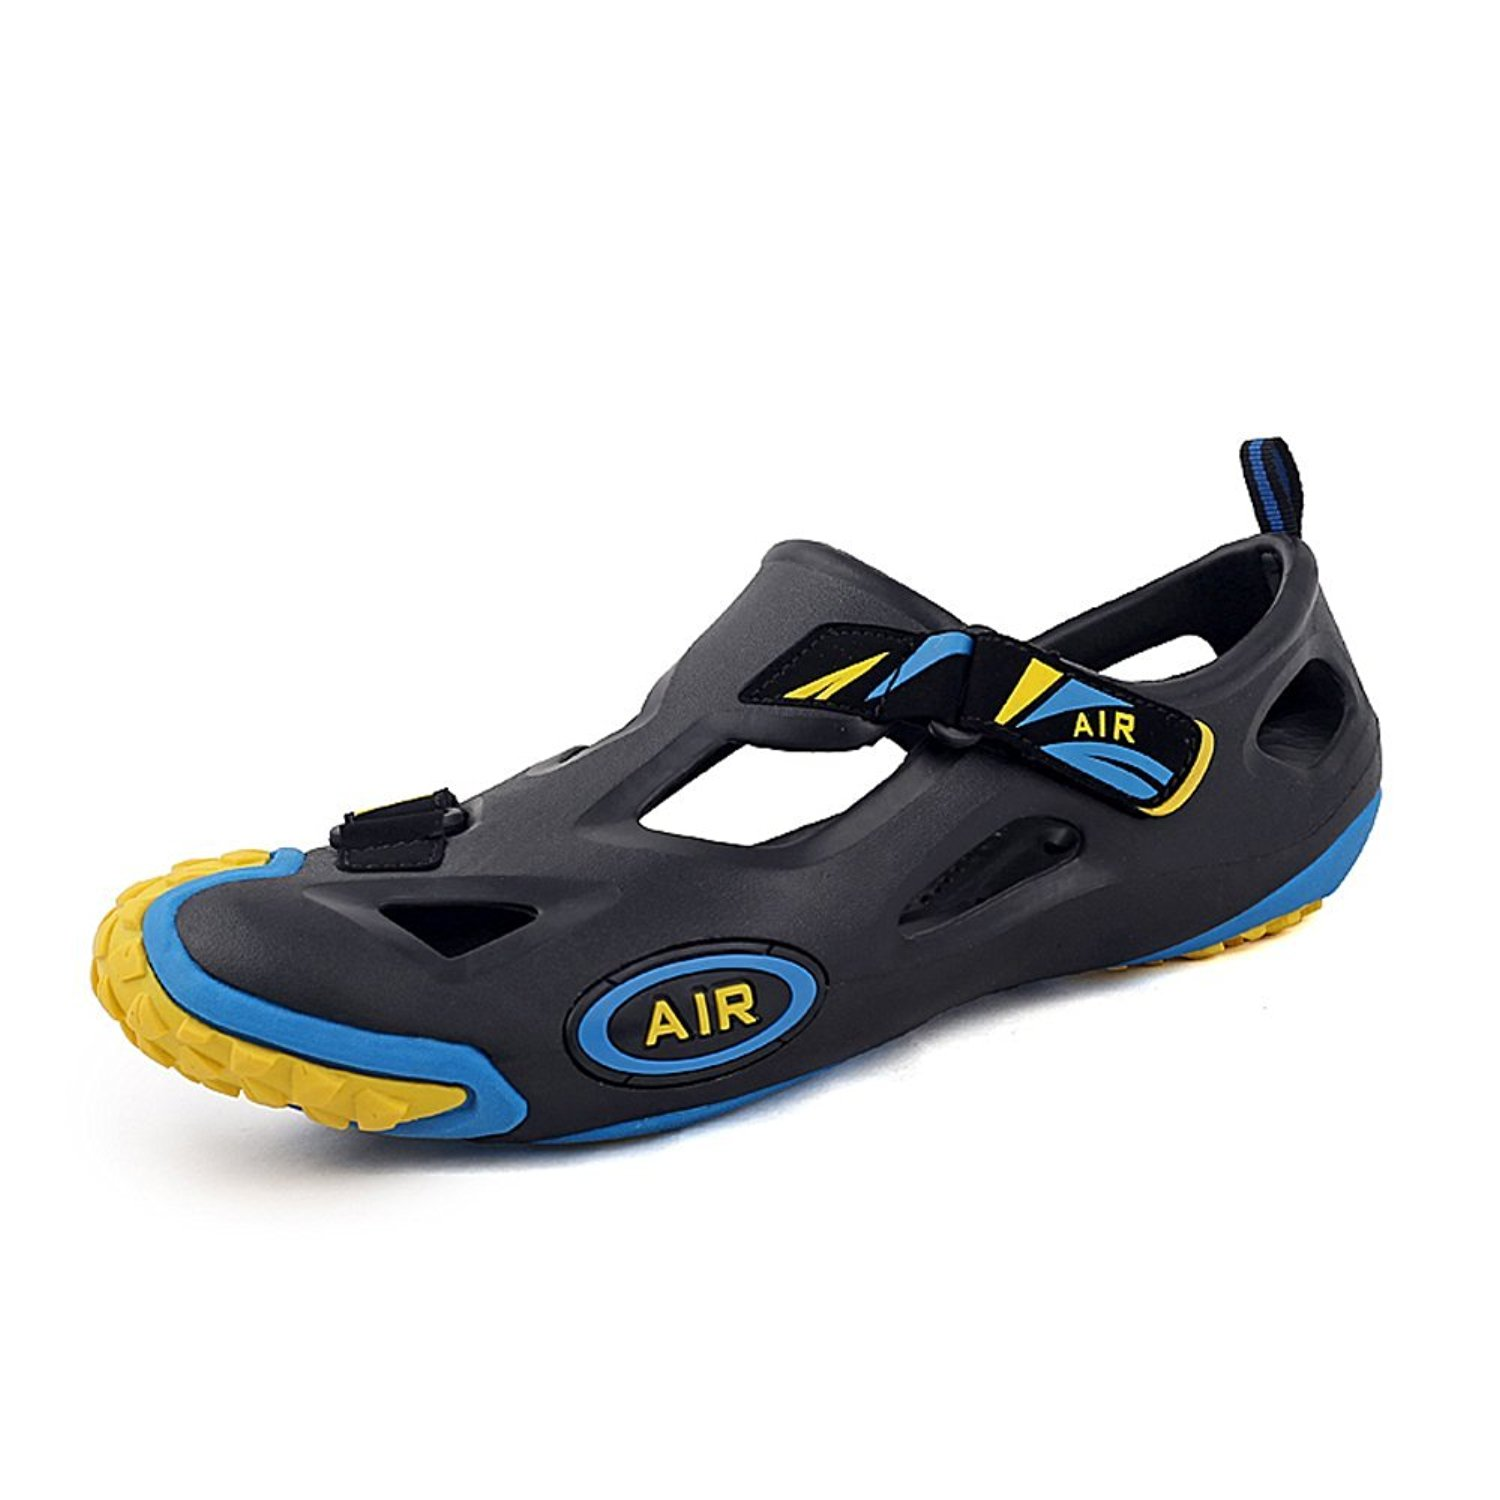 f3f00889d7f7 Get Quotations · Mens Closed Toe Beach Water Shoes Side Velcro EVA Garden  Hole Jelly Clogs Sandals